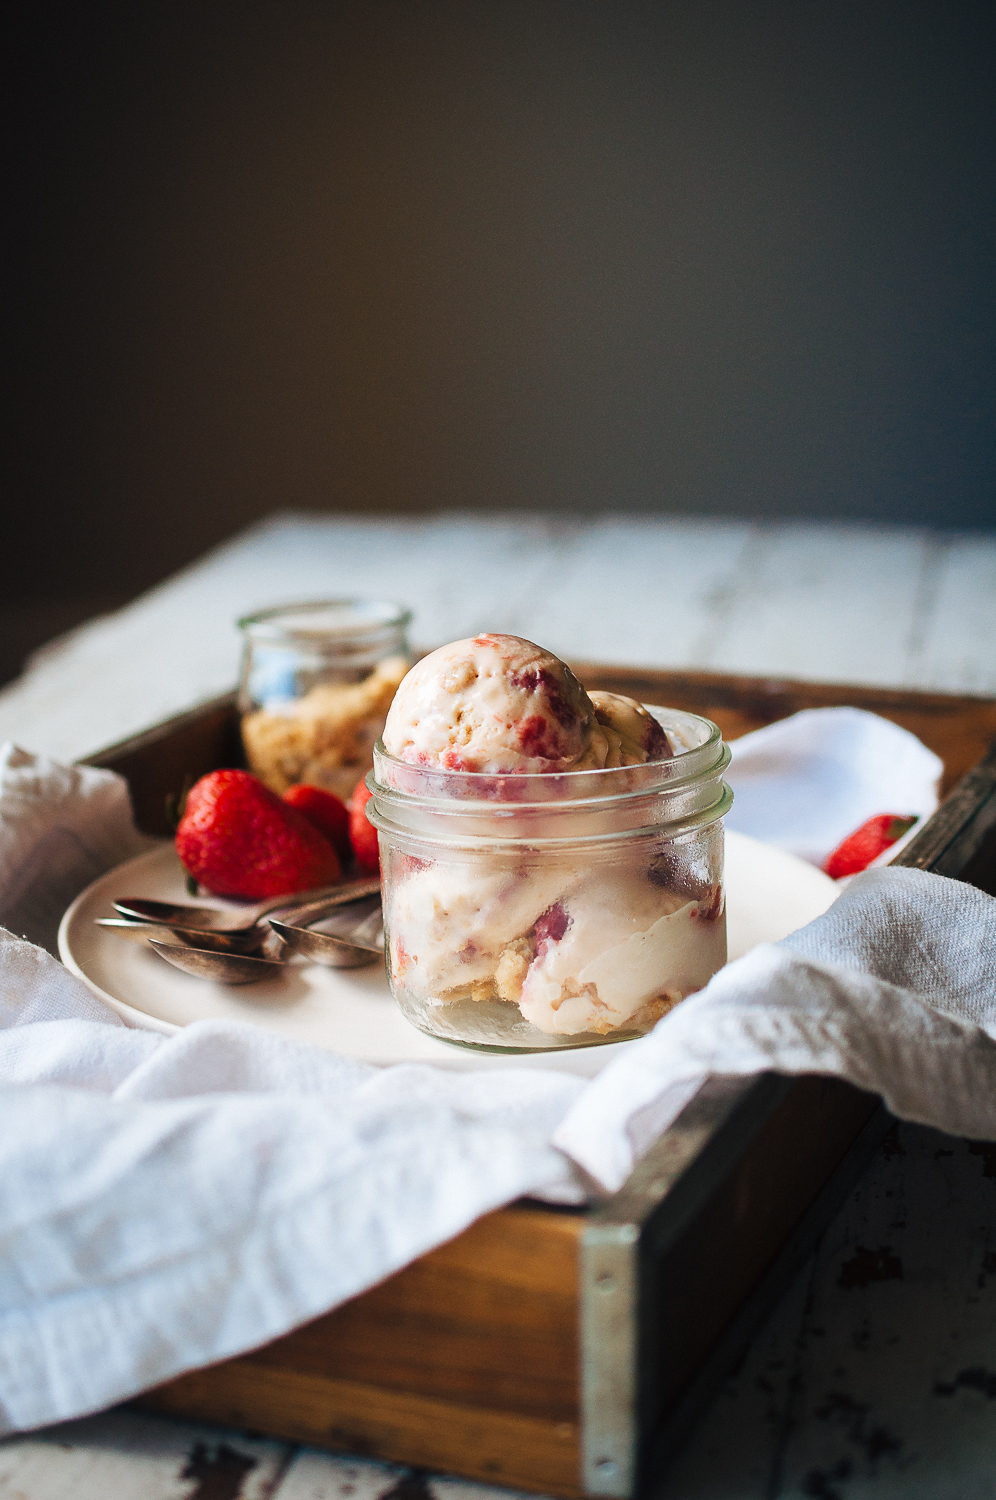 Strawberry Rhubarb Streusel Ice Cream 13.jpg